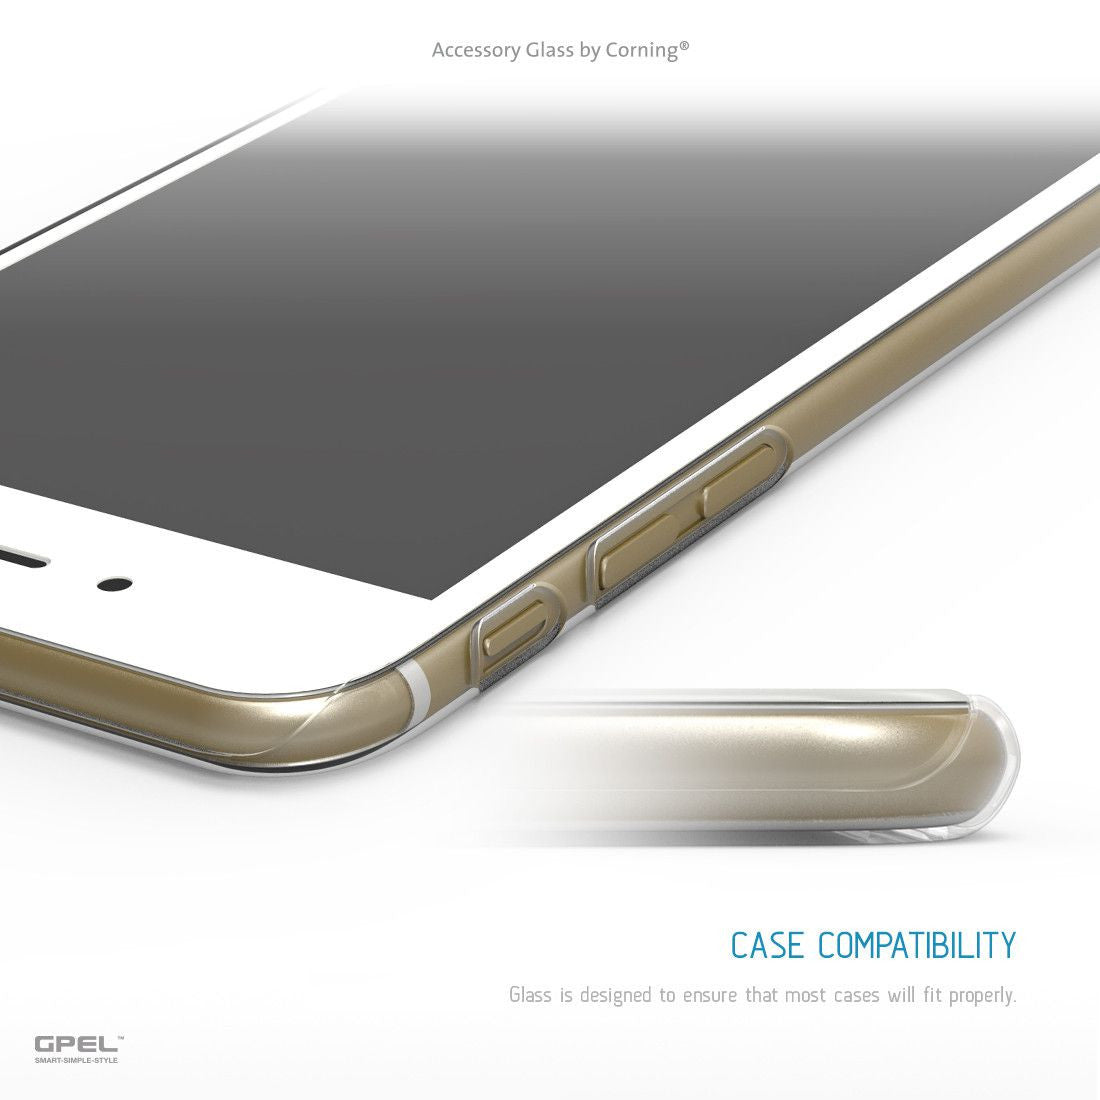 pretty nice e2901 04d10 iPhone 6|6S Full Coverage Accessory Glass by Corning® Screen Protector